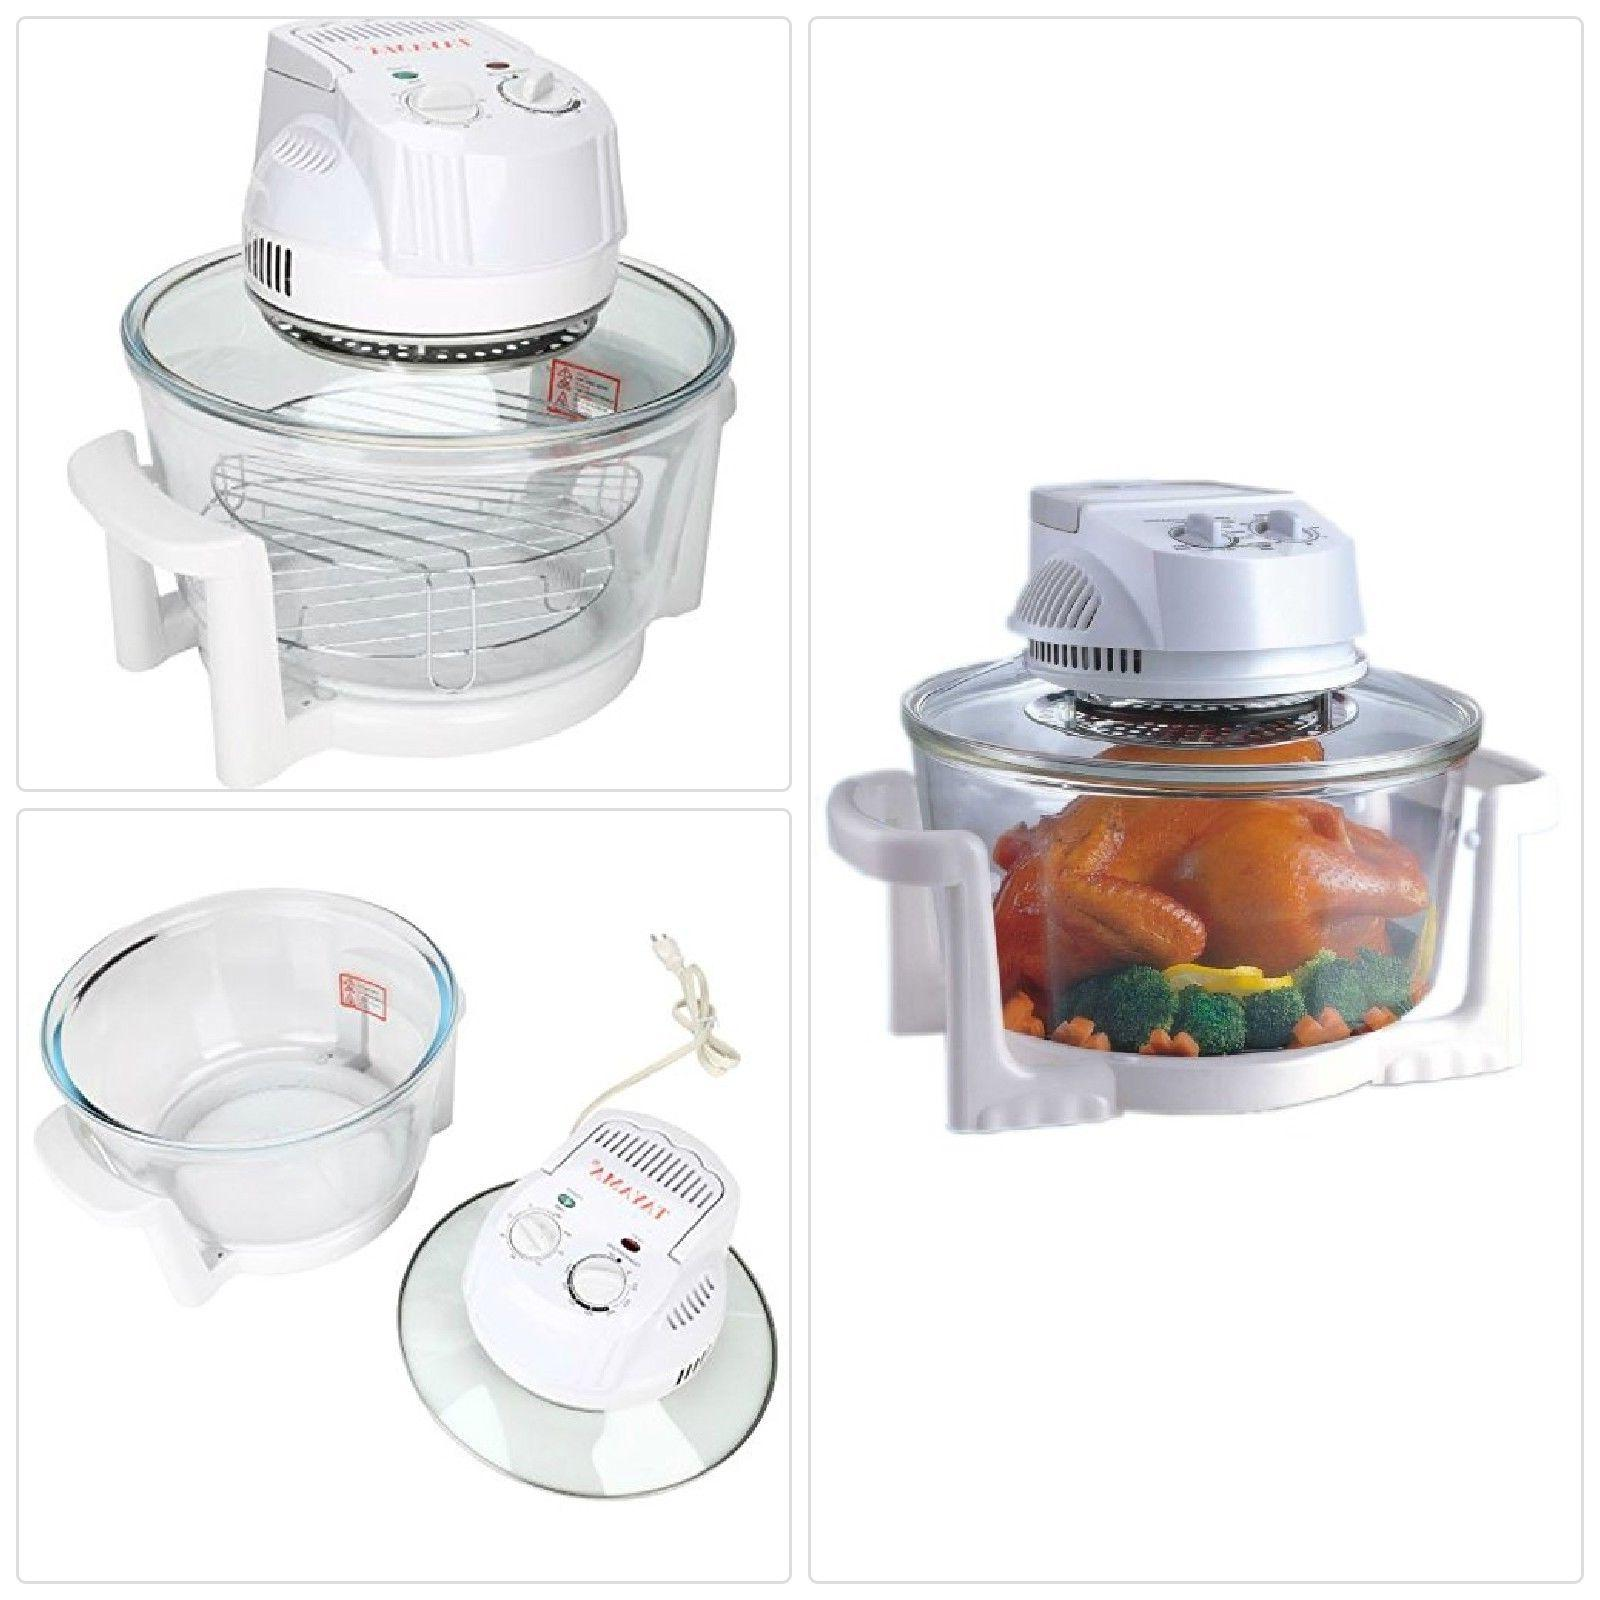 turbo convection oven electric air fryer cooker